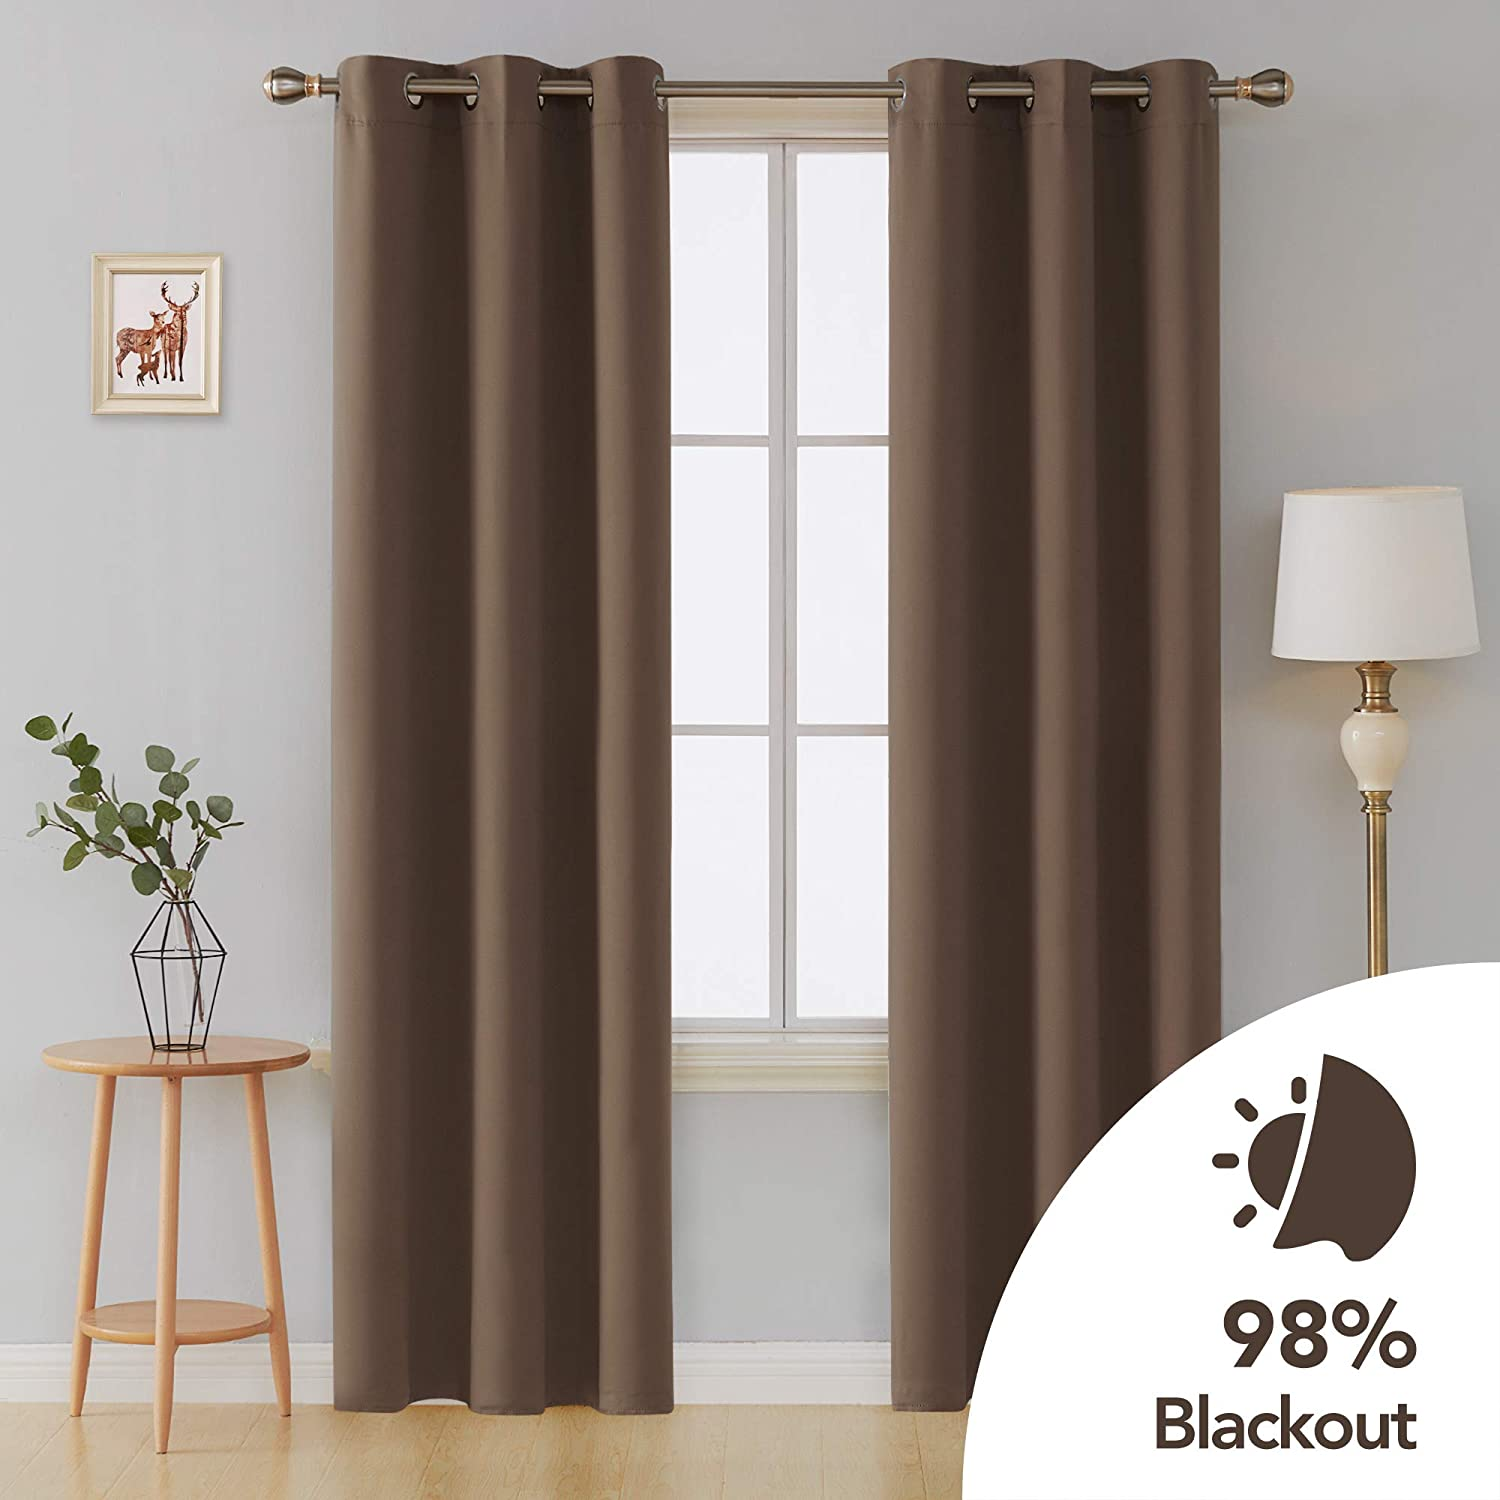 Deconovo Thermal Insulated Curtains Room Darkening Grommet Curtain Panel Blackout Drapes 42 Inch by 95 Inch Beige Set of 4